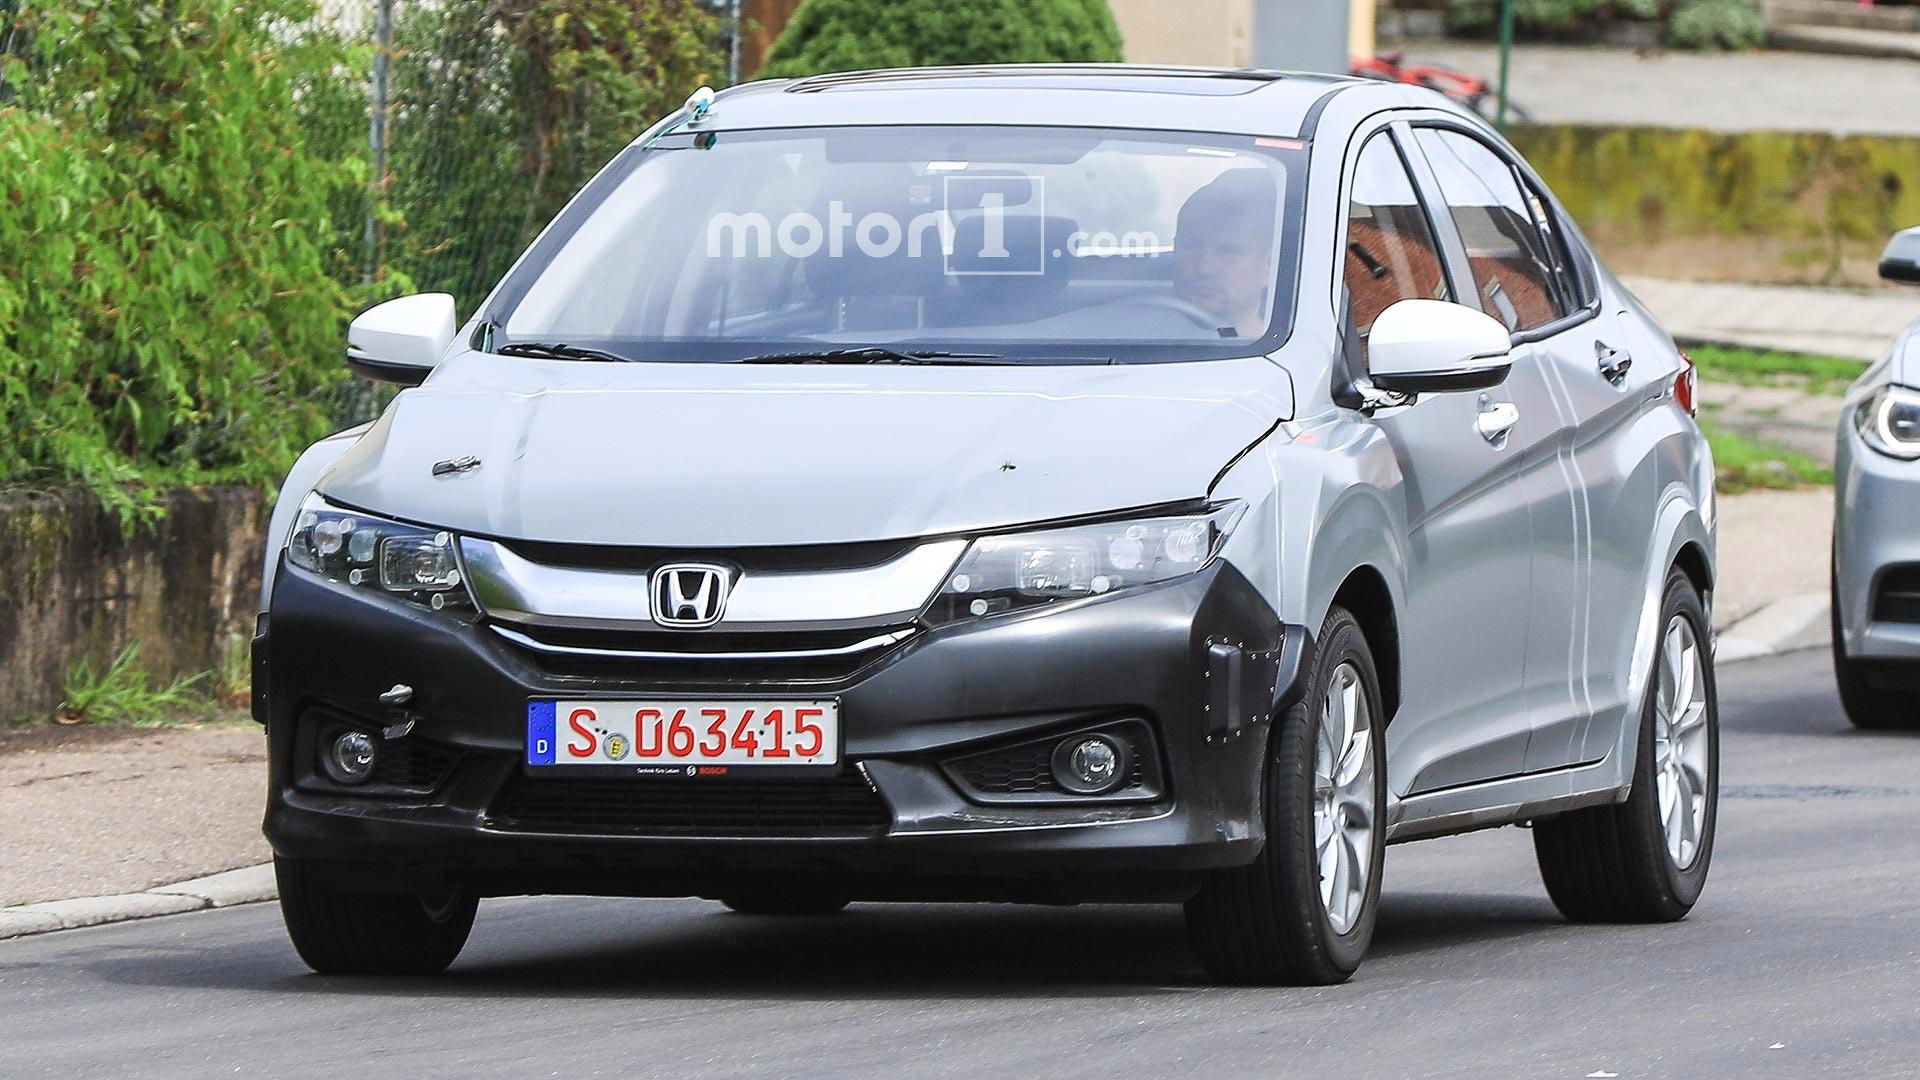 Honda Insight 3 2018 : le spyshot de la revanche?